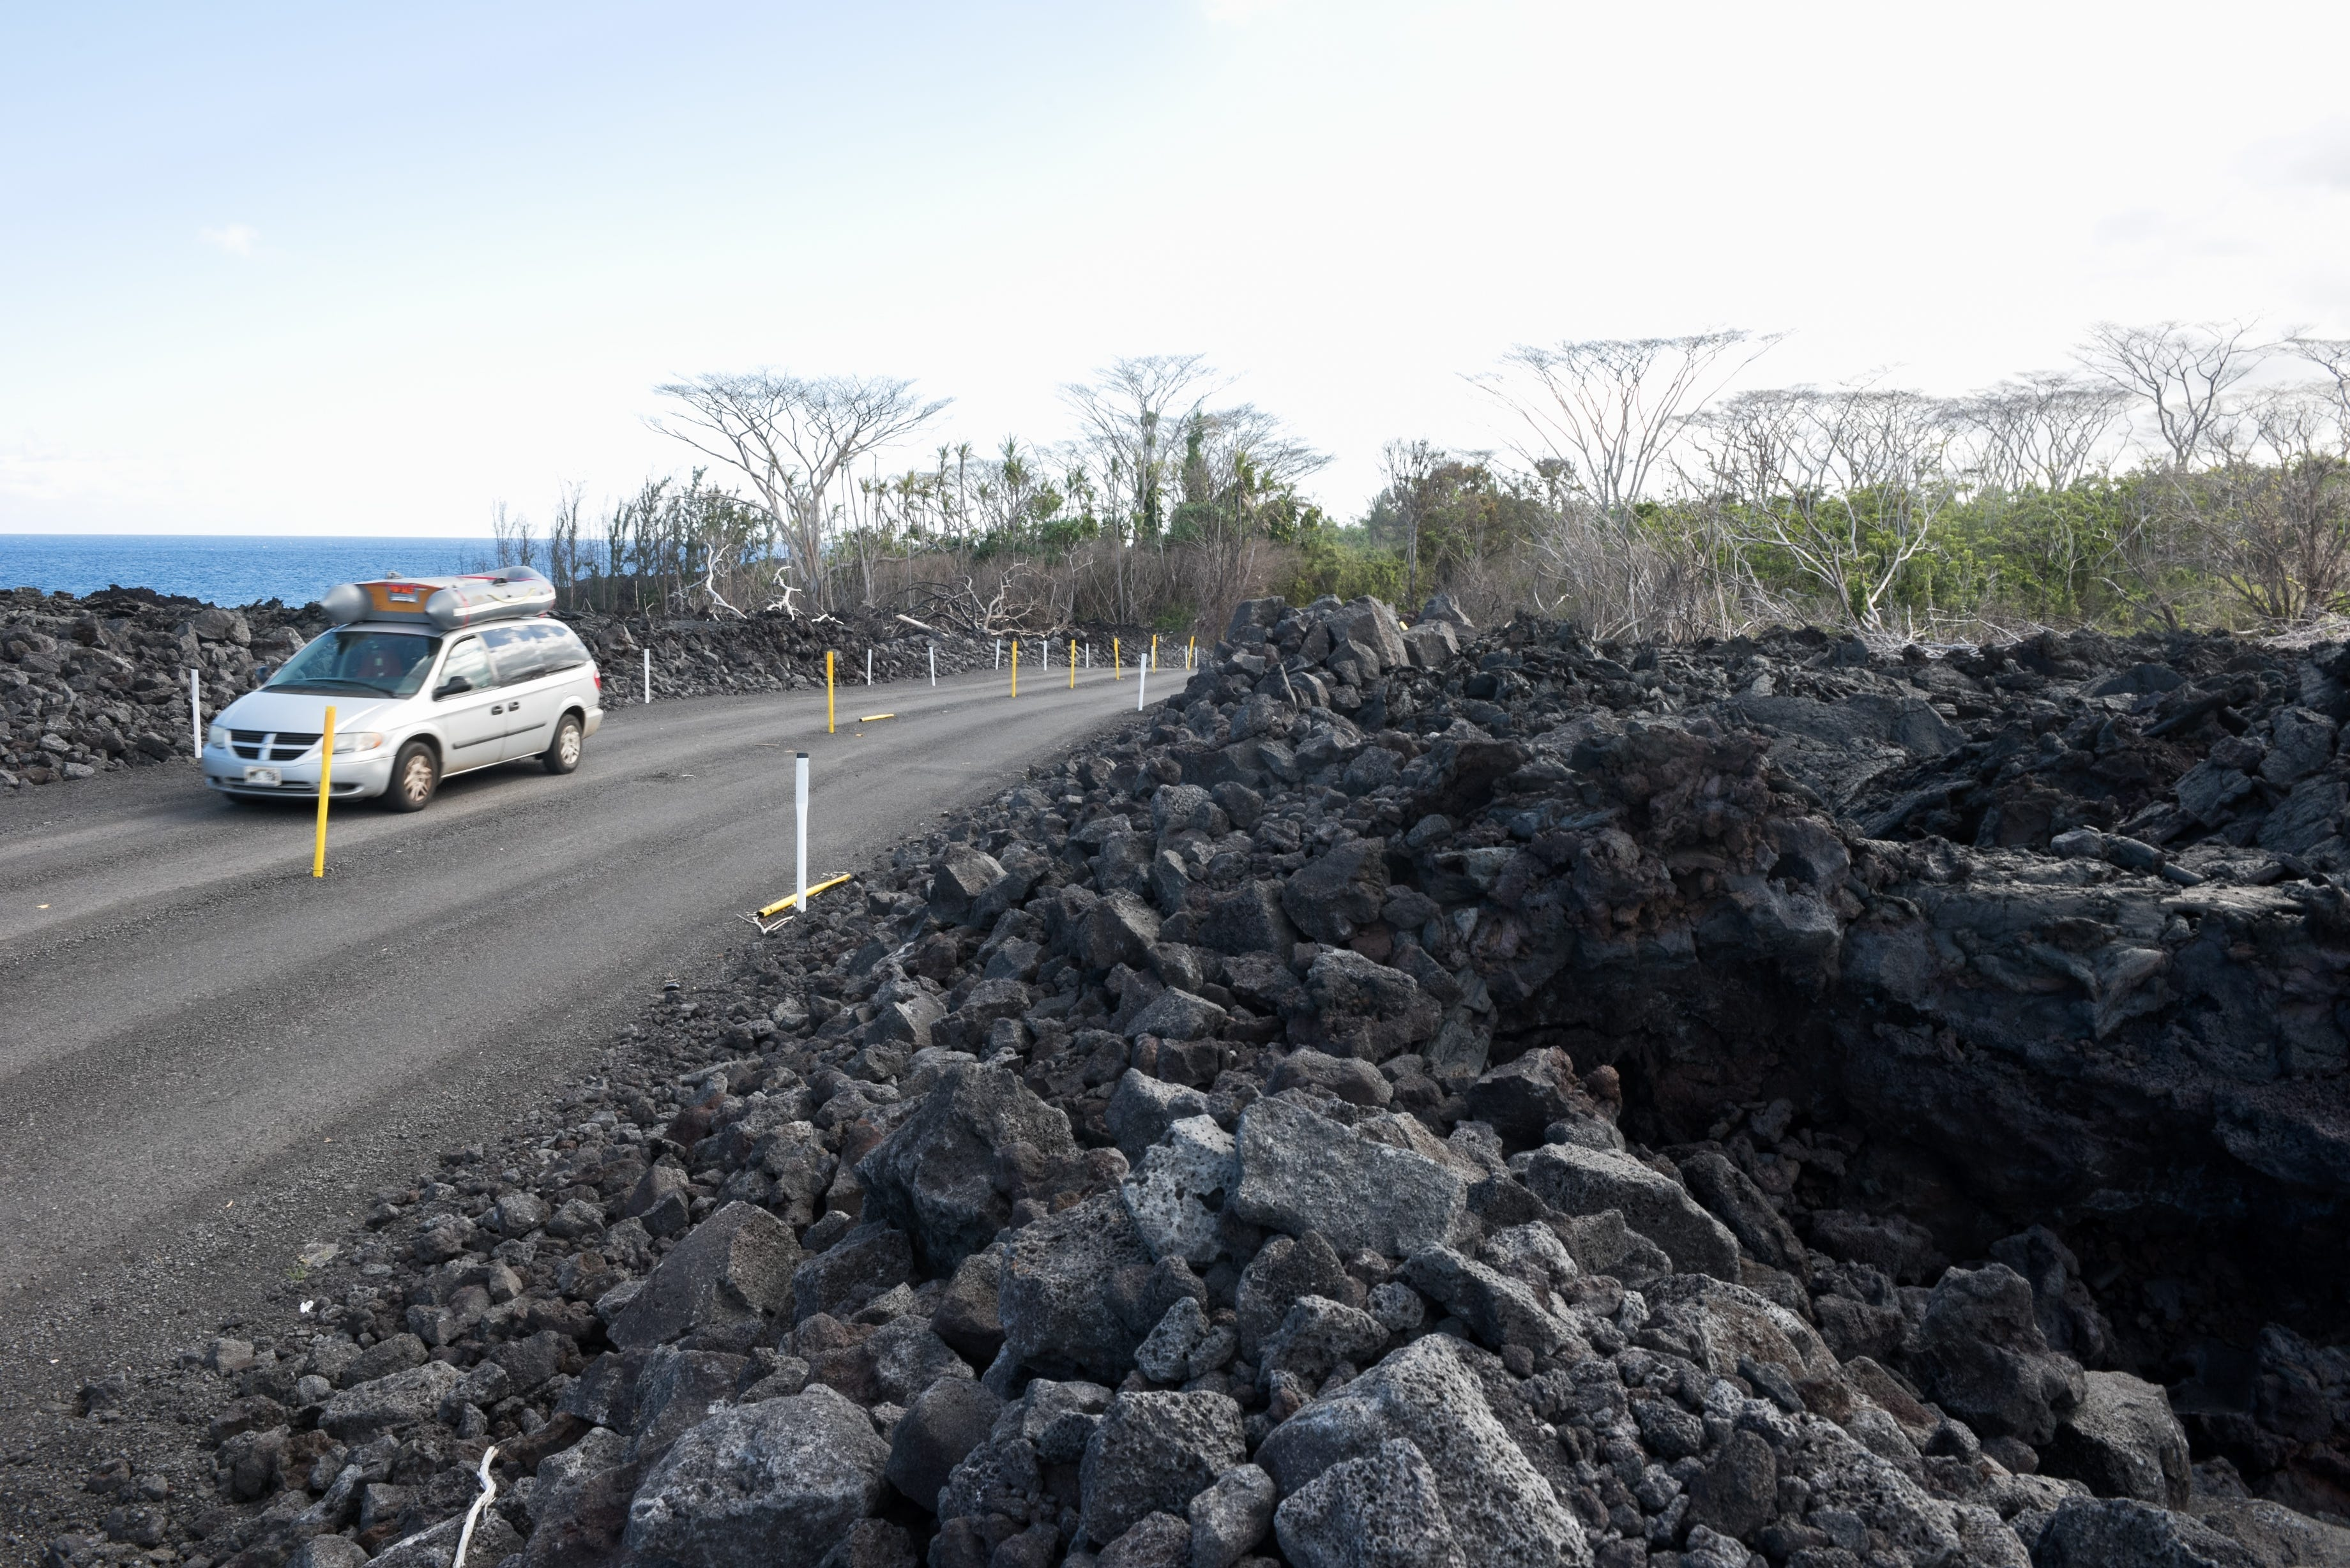 A temporary road was built over the lava field by the government to allow residents and tourists access to the newly formed black sand beaches in Puna, Hawaii.